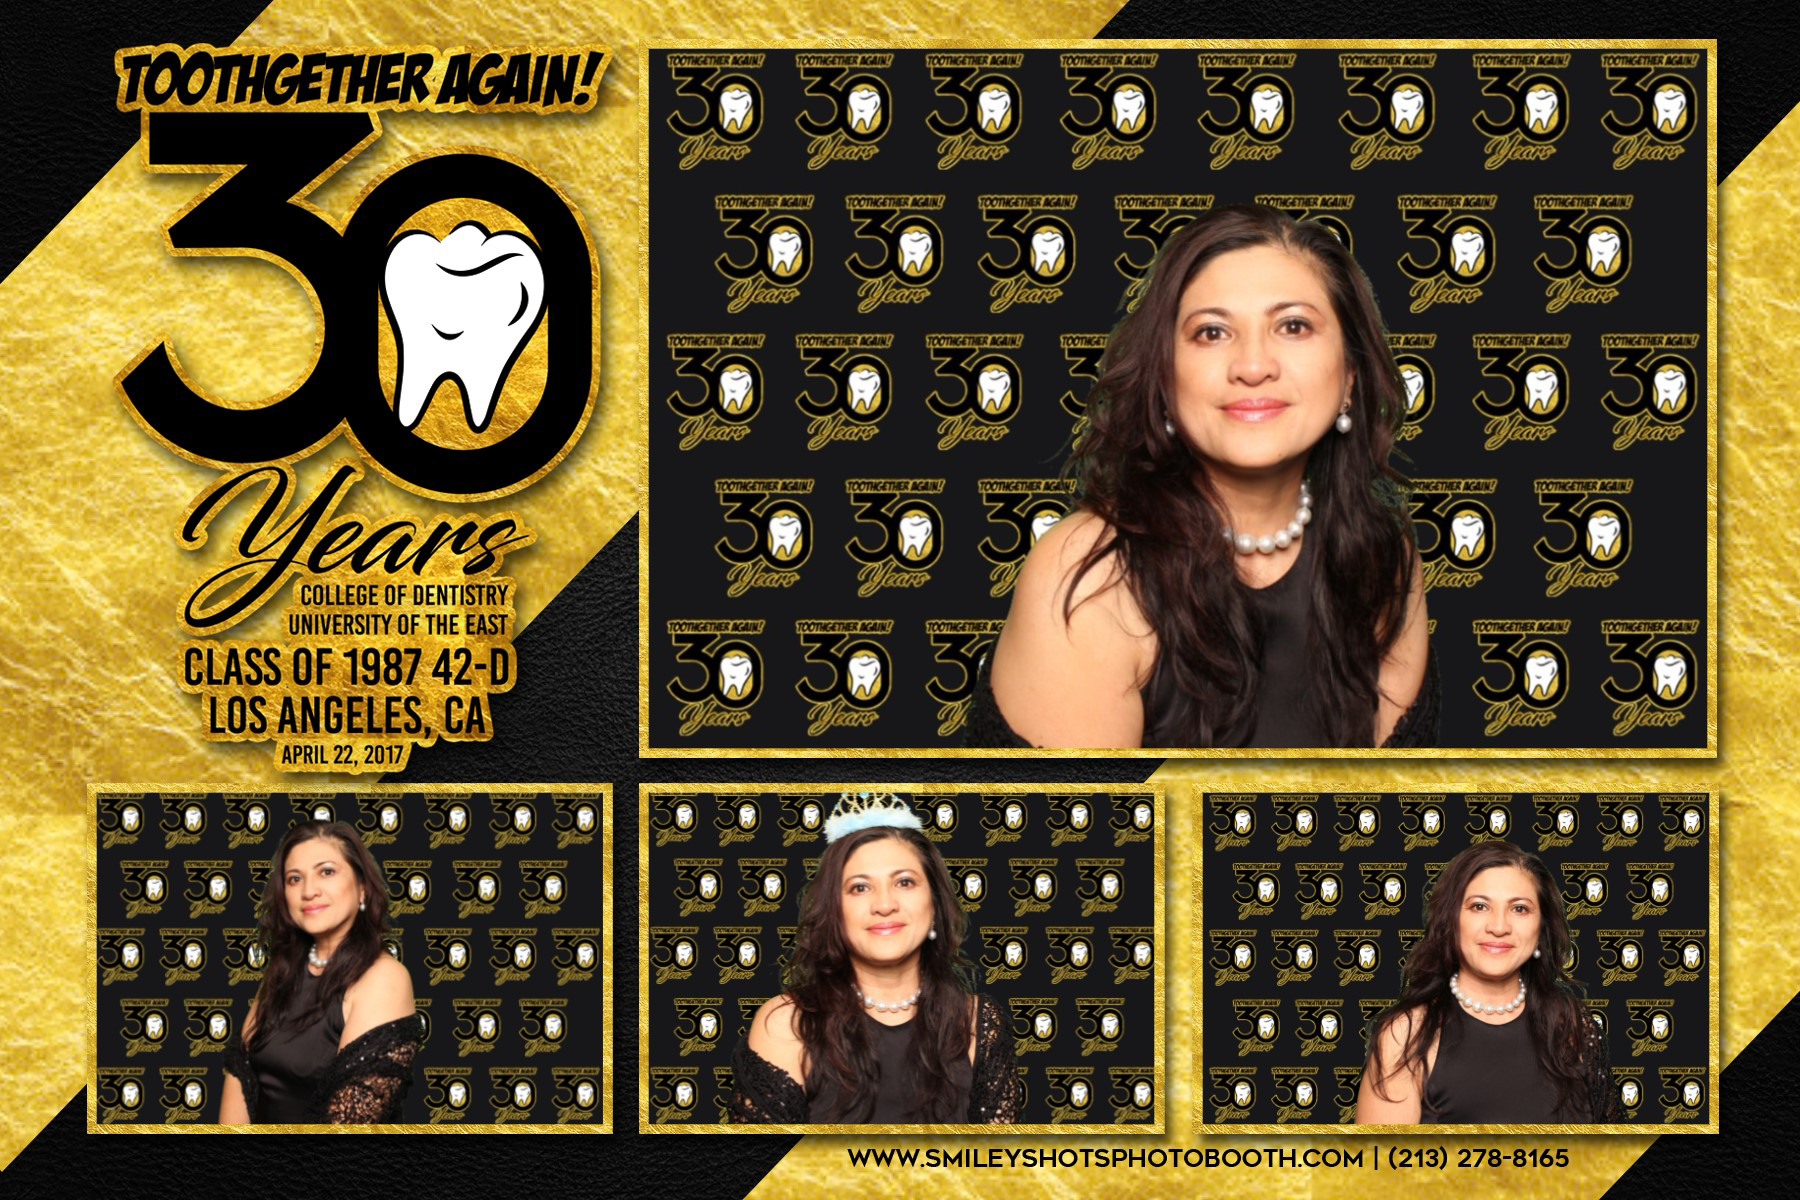 30th Years Dental UE Smiley Shots Photo Booth Photobooth (25).png